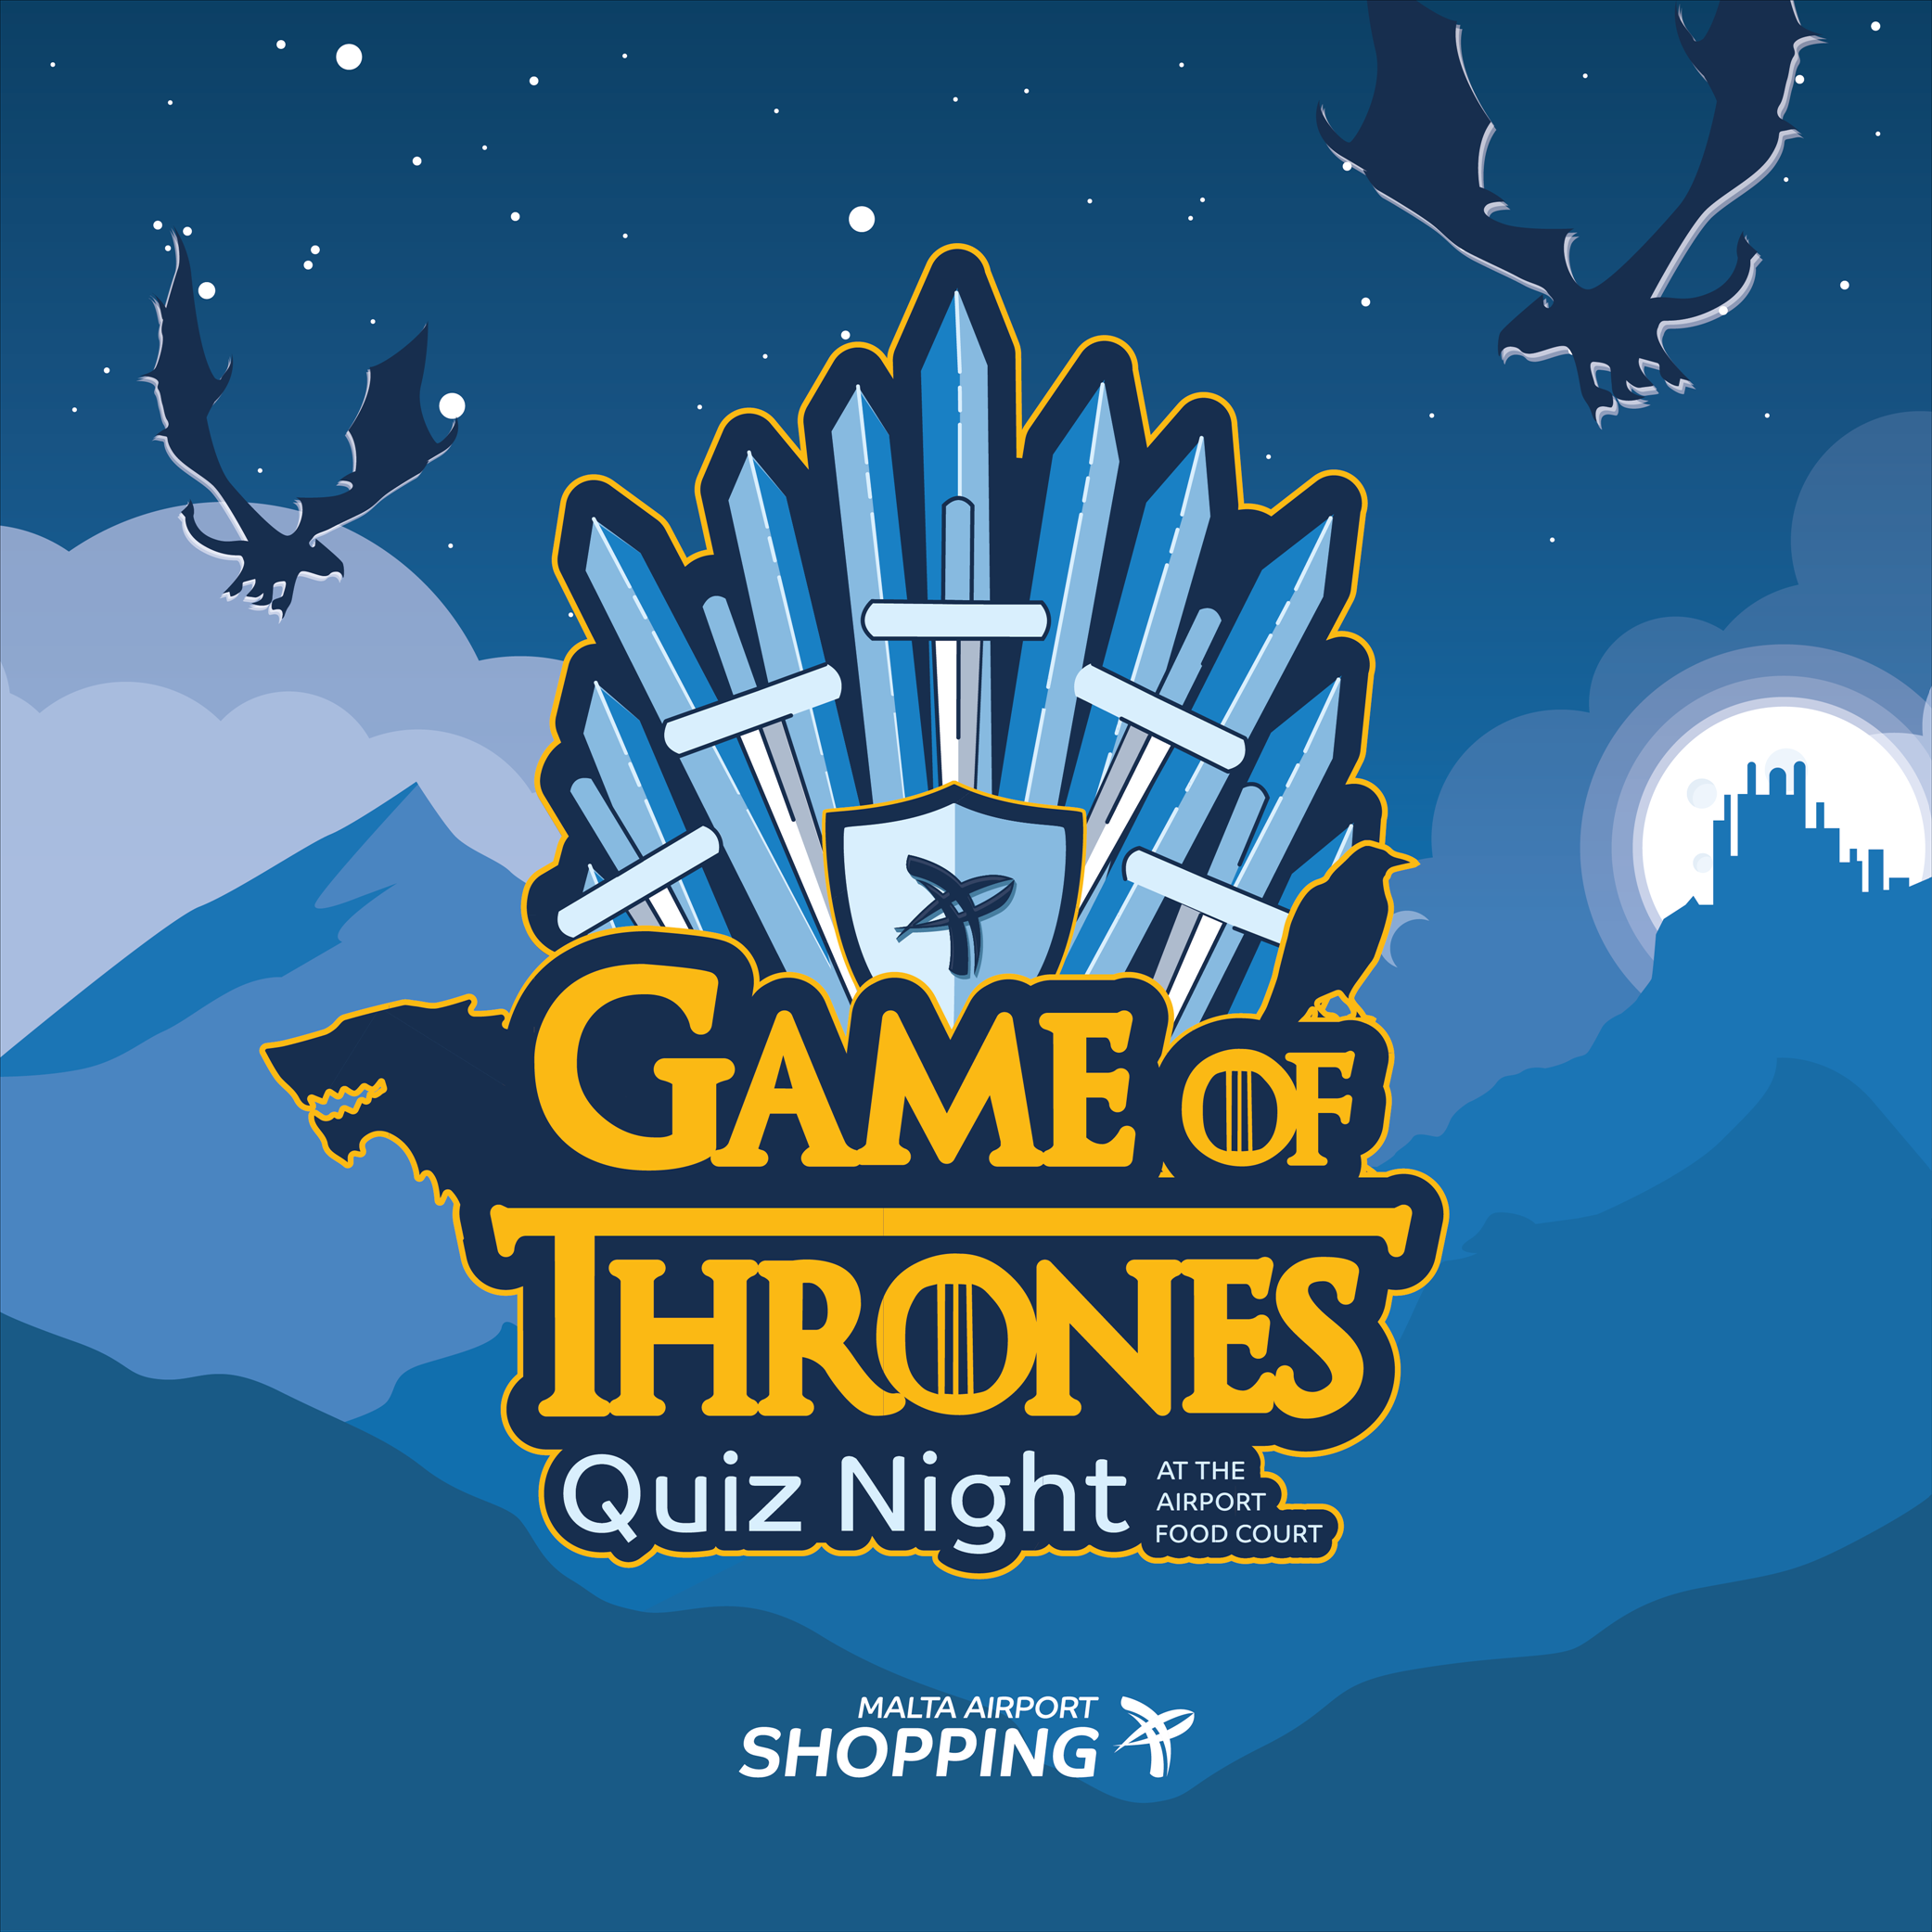 Game of Thrones Quiz Night at the Airport Food Court flyer